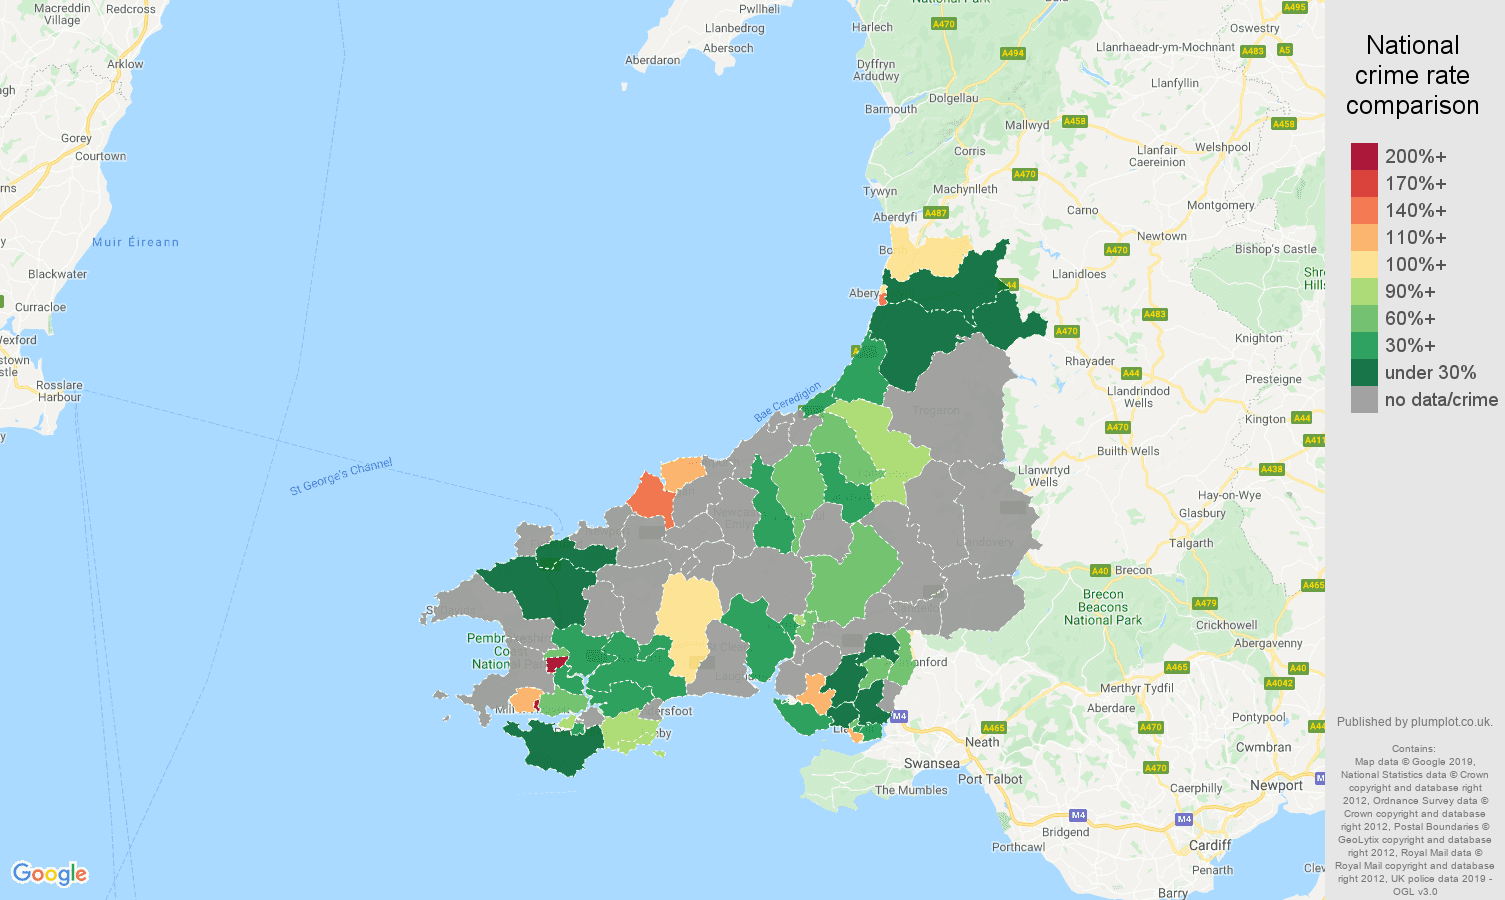 Dyfed possession of weapons crime rate comparison map